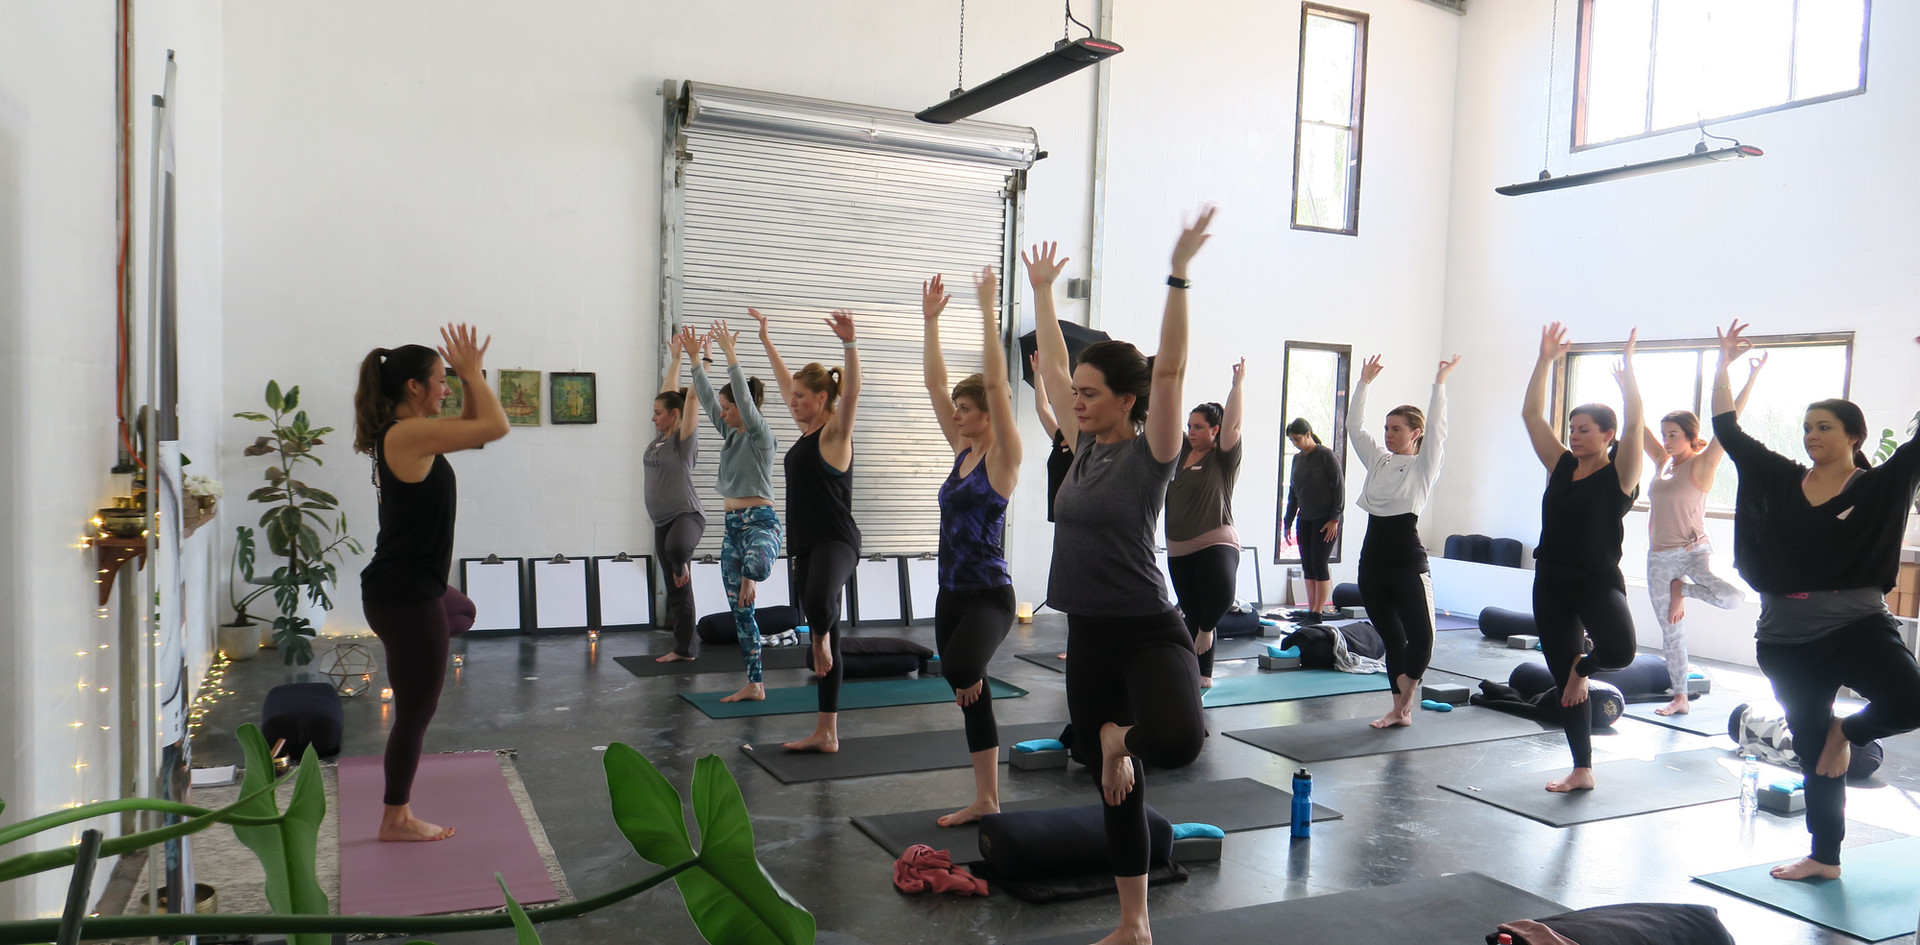 Leonie leading the yoga session before our Charcoal and Champagne workshop getting the ladies into the zone